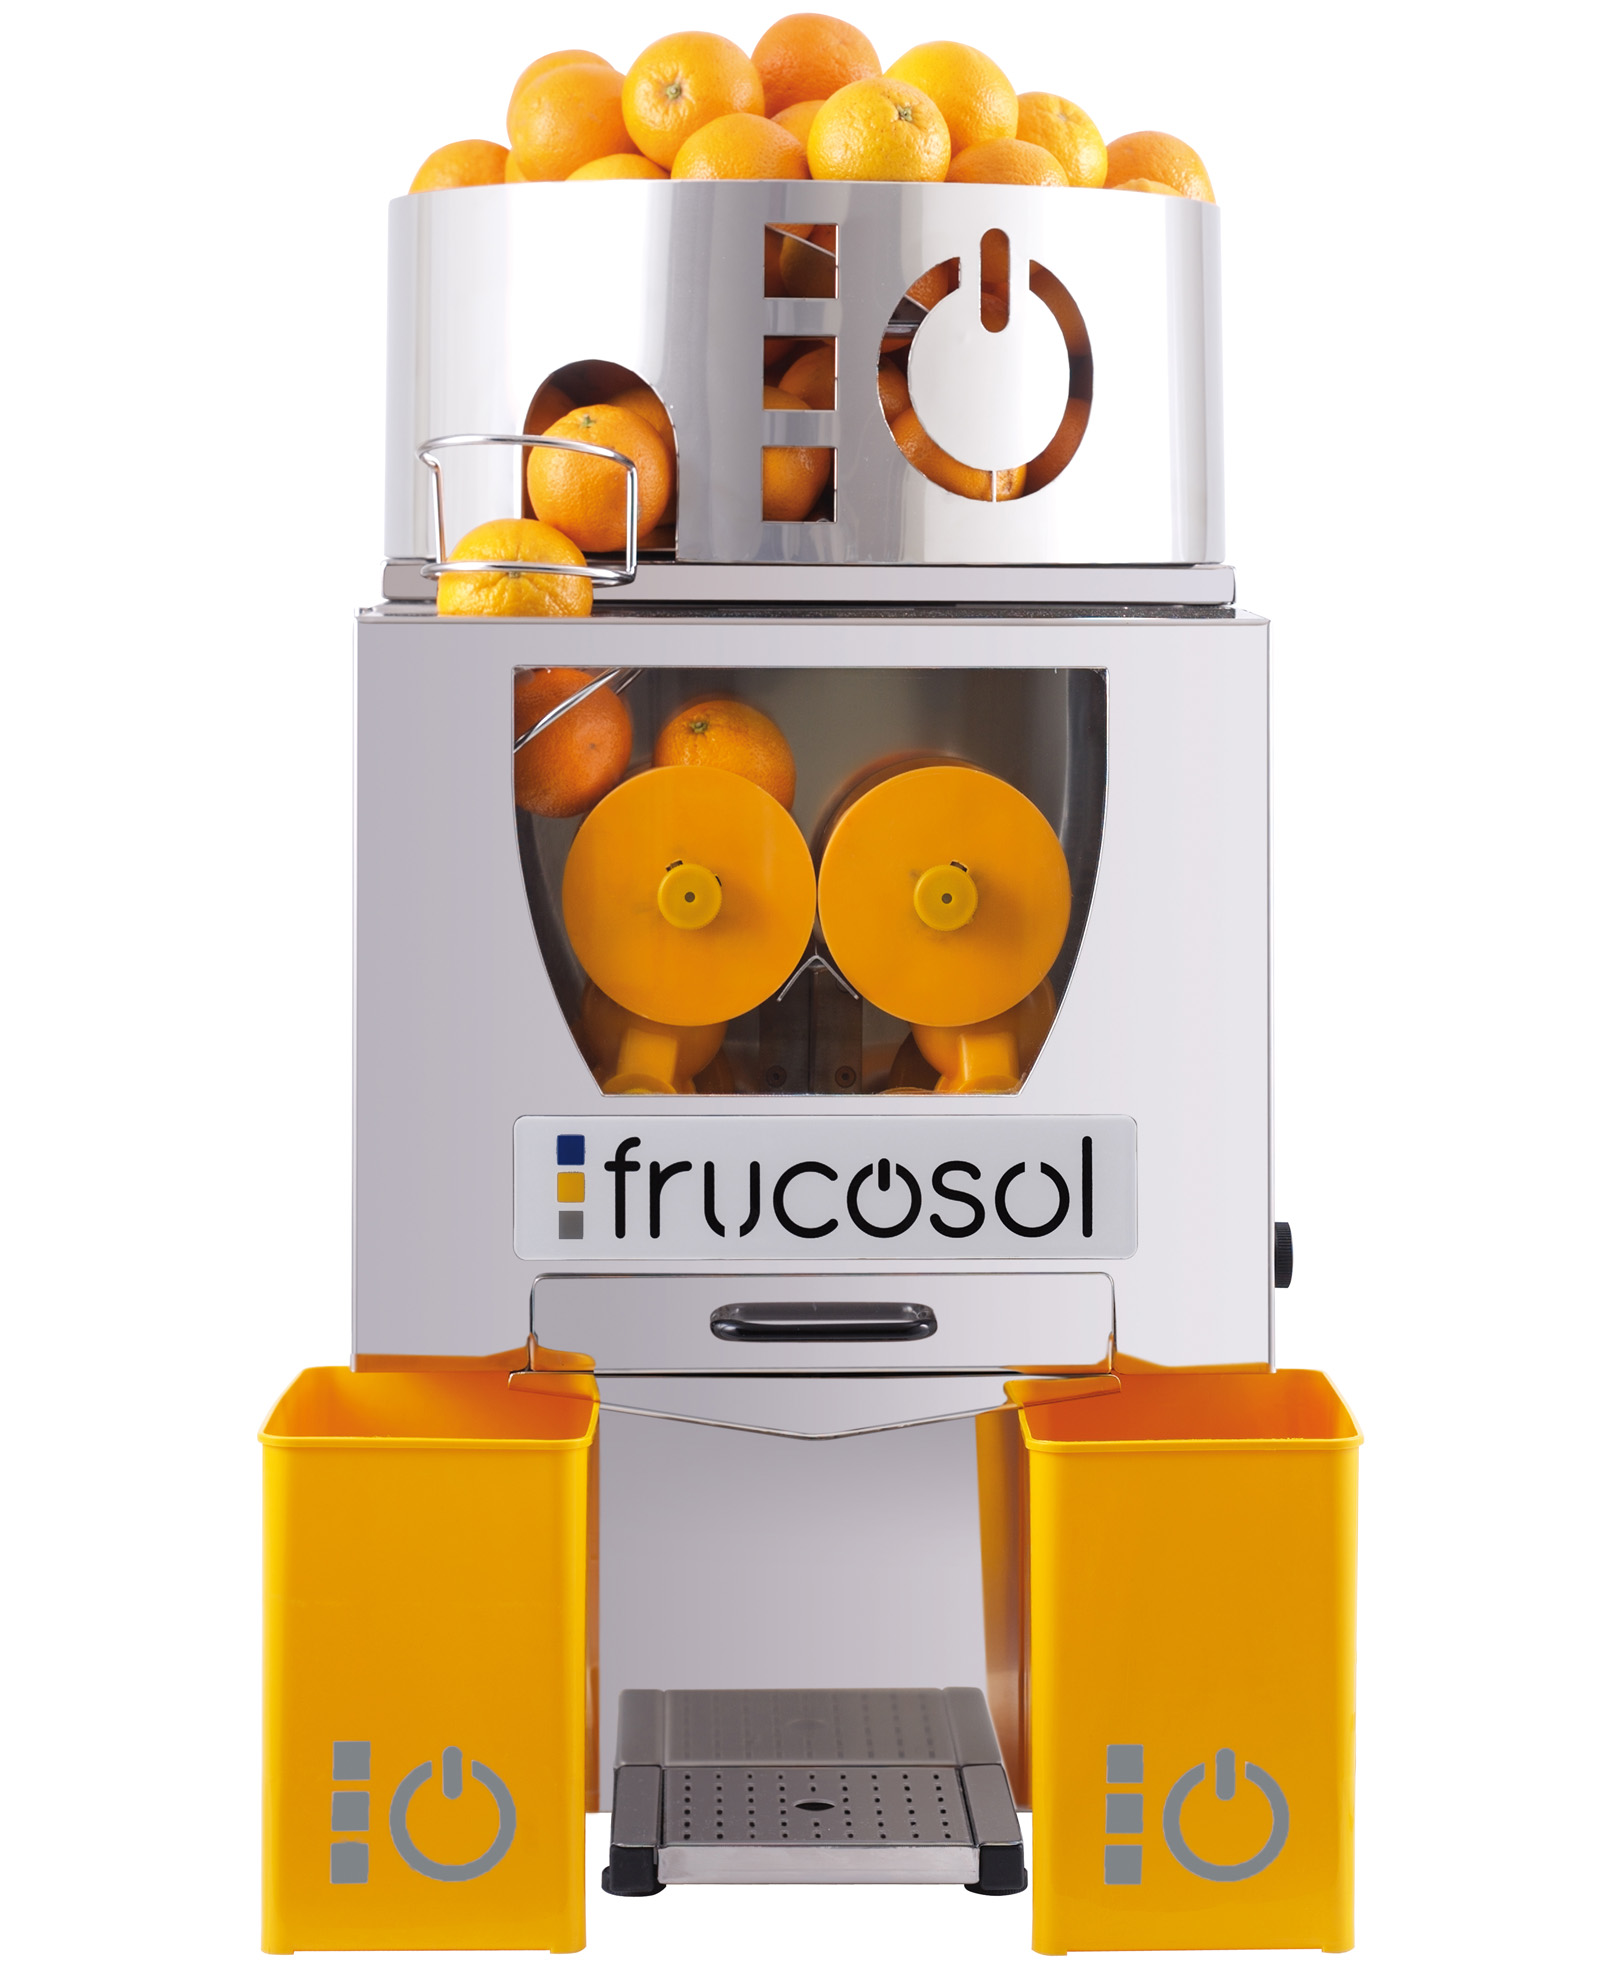 Automatic Orange Juicer For Home Use